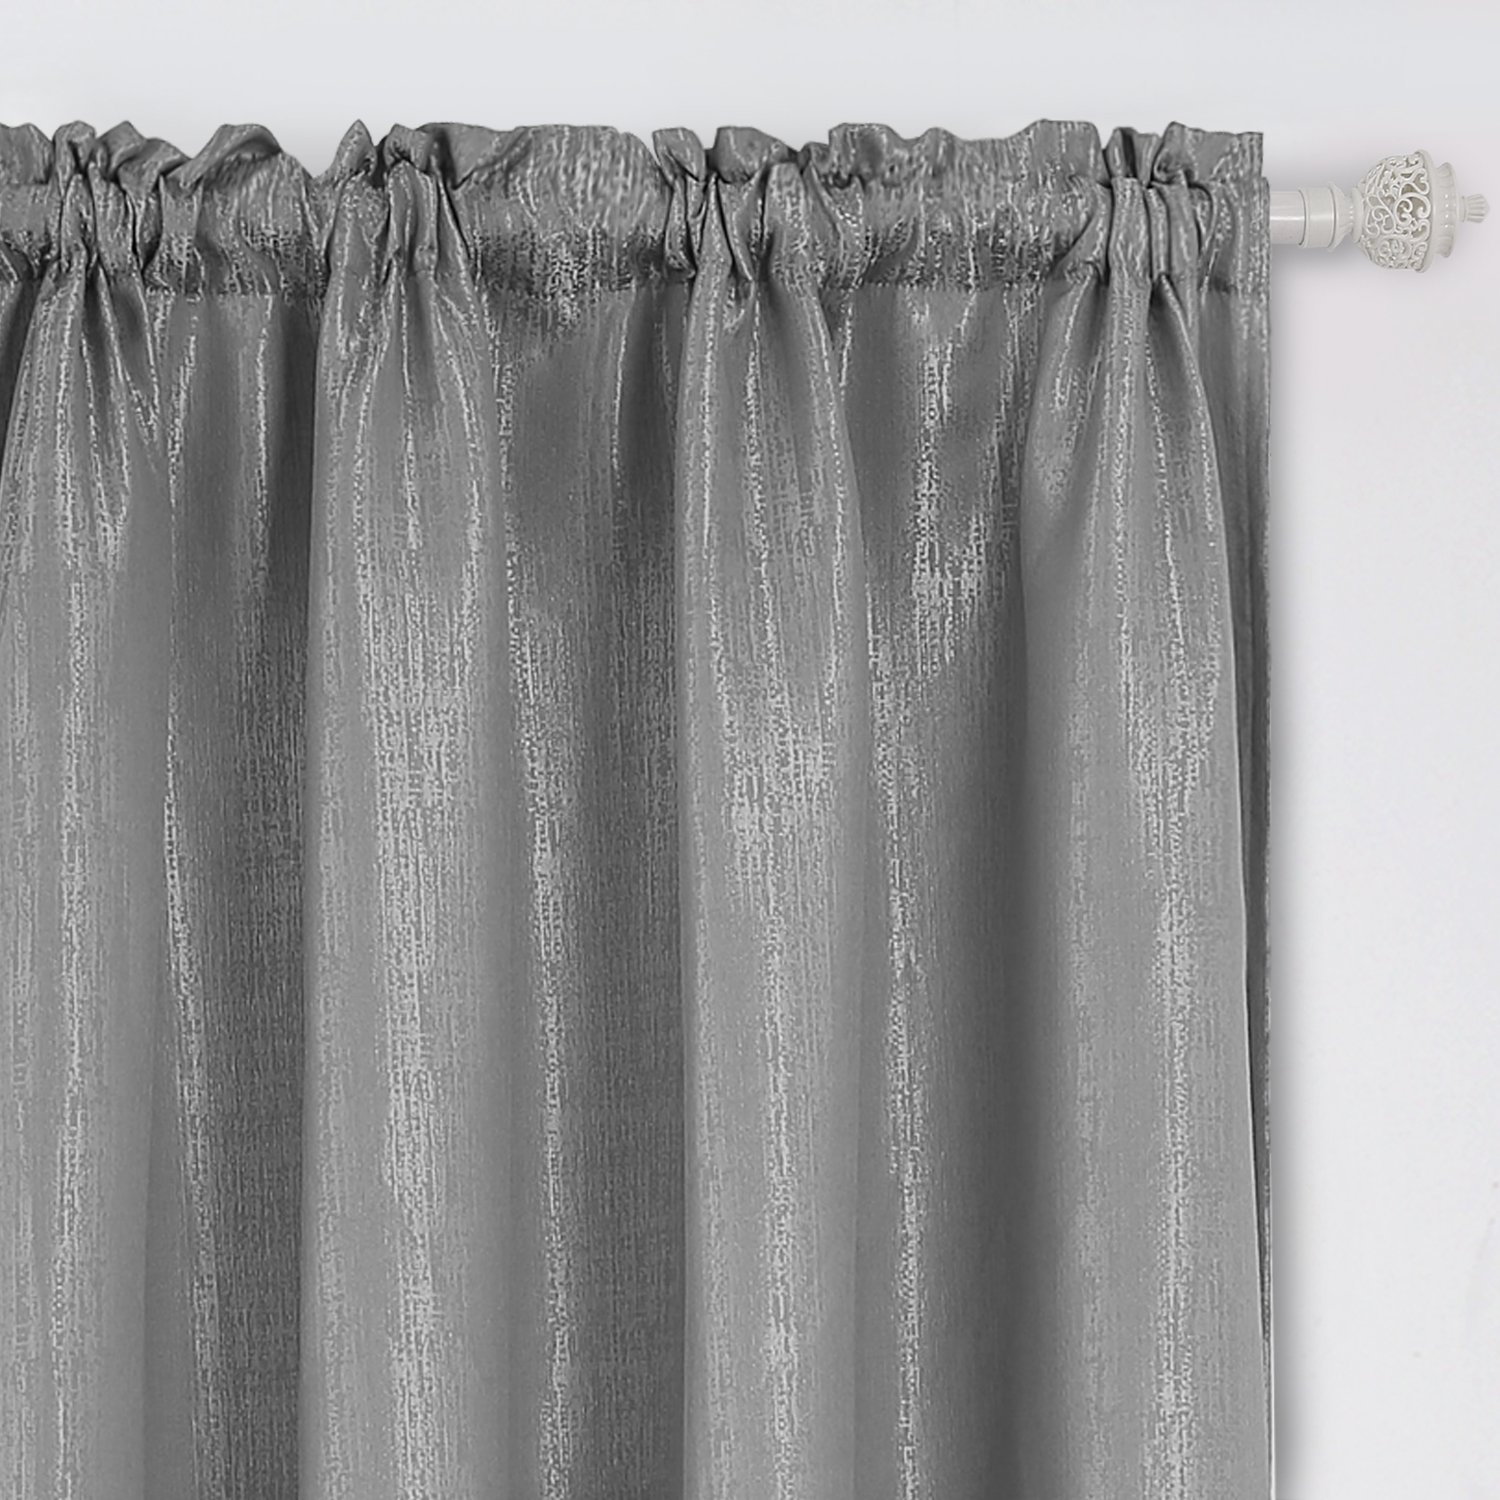 Deconovo Rod Pocket Luxurious Curtains Jacquard Curtains with Marble Pattern for Living Room 52W x 95L Grey 2 Panels